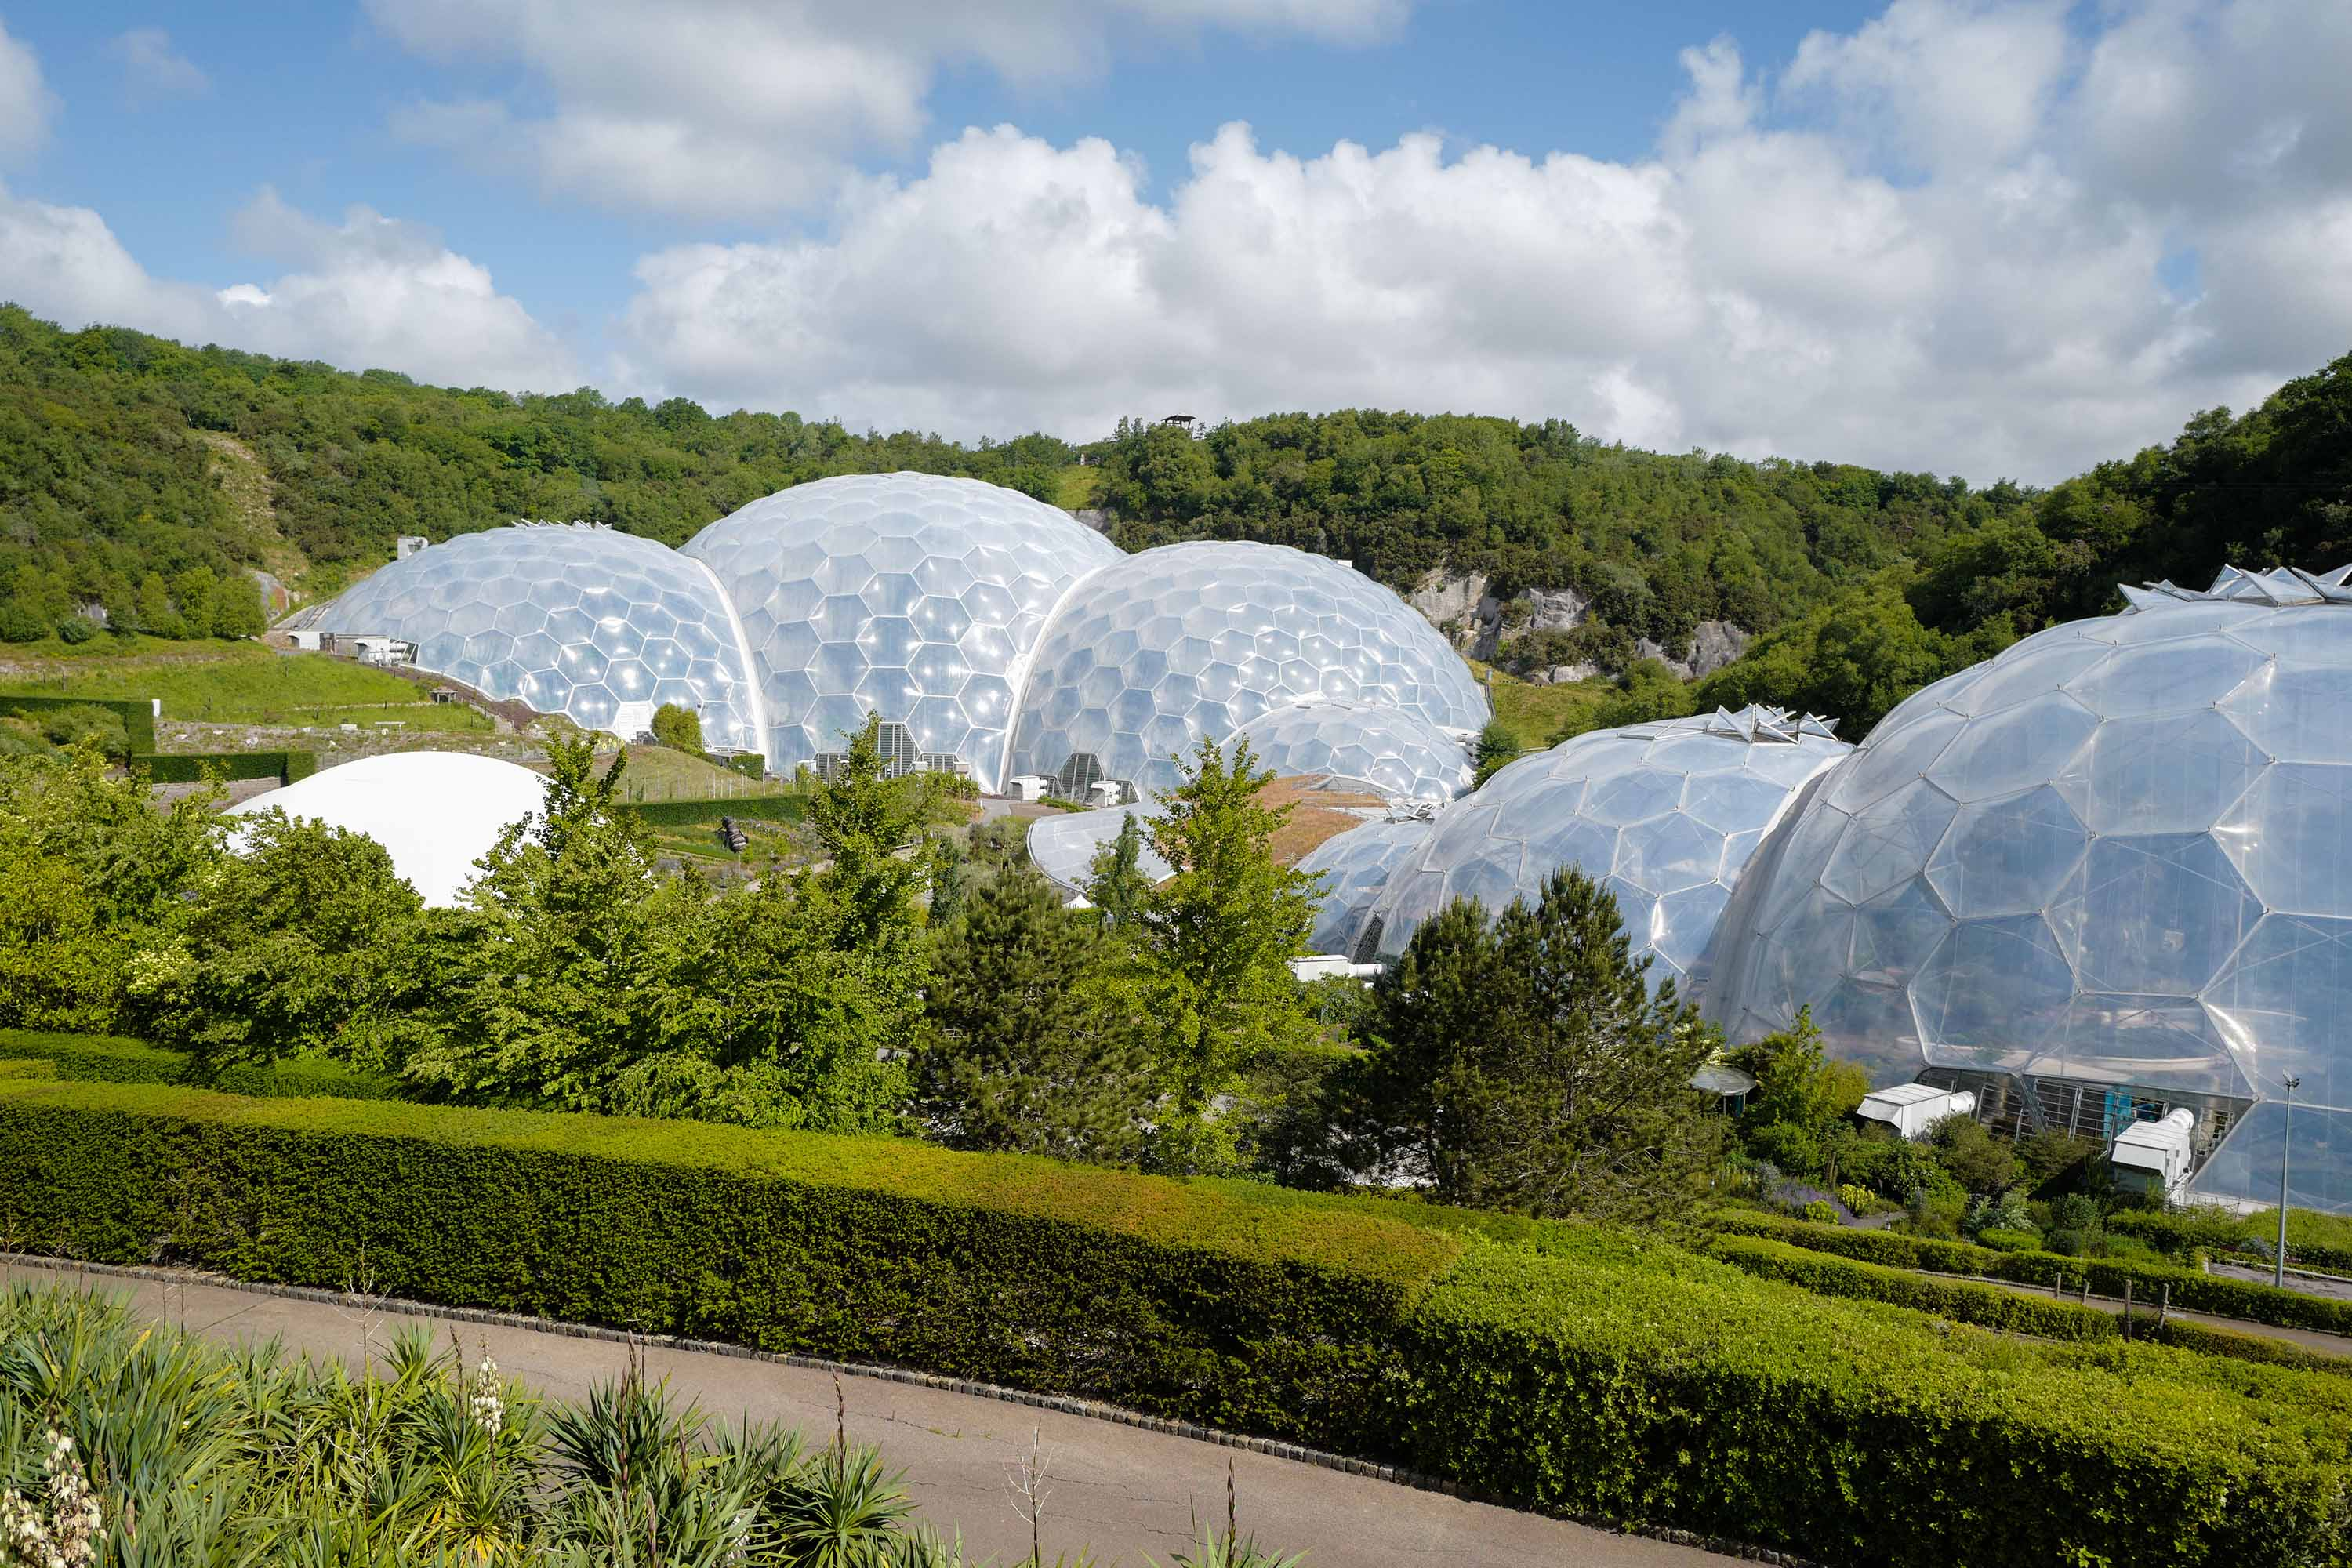 The Eden Project is pictured in June 2020 in St Austel, England.